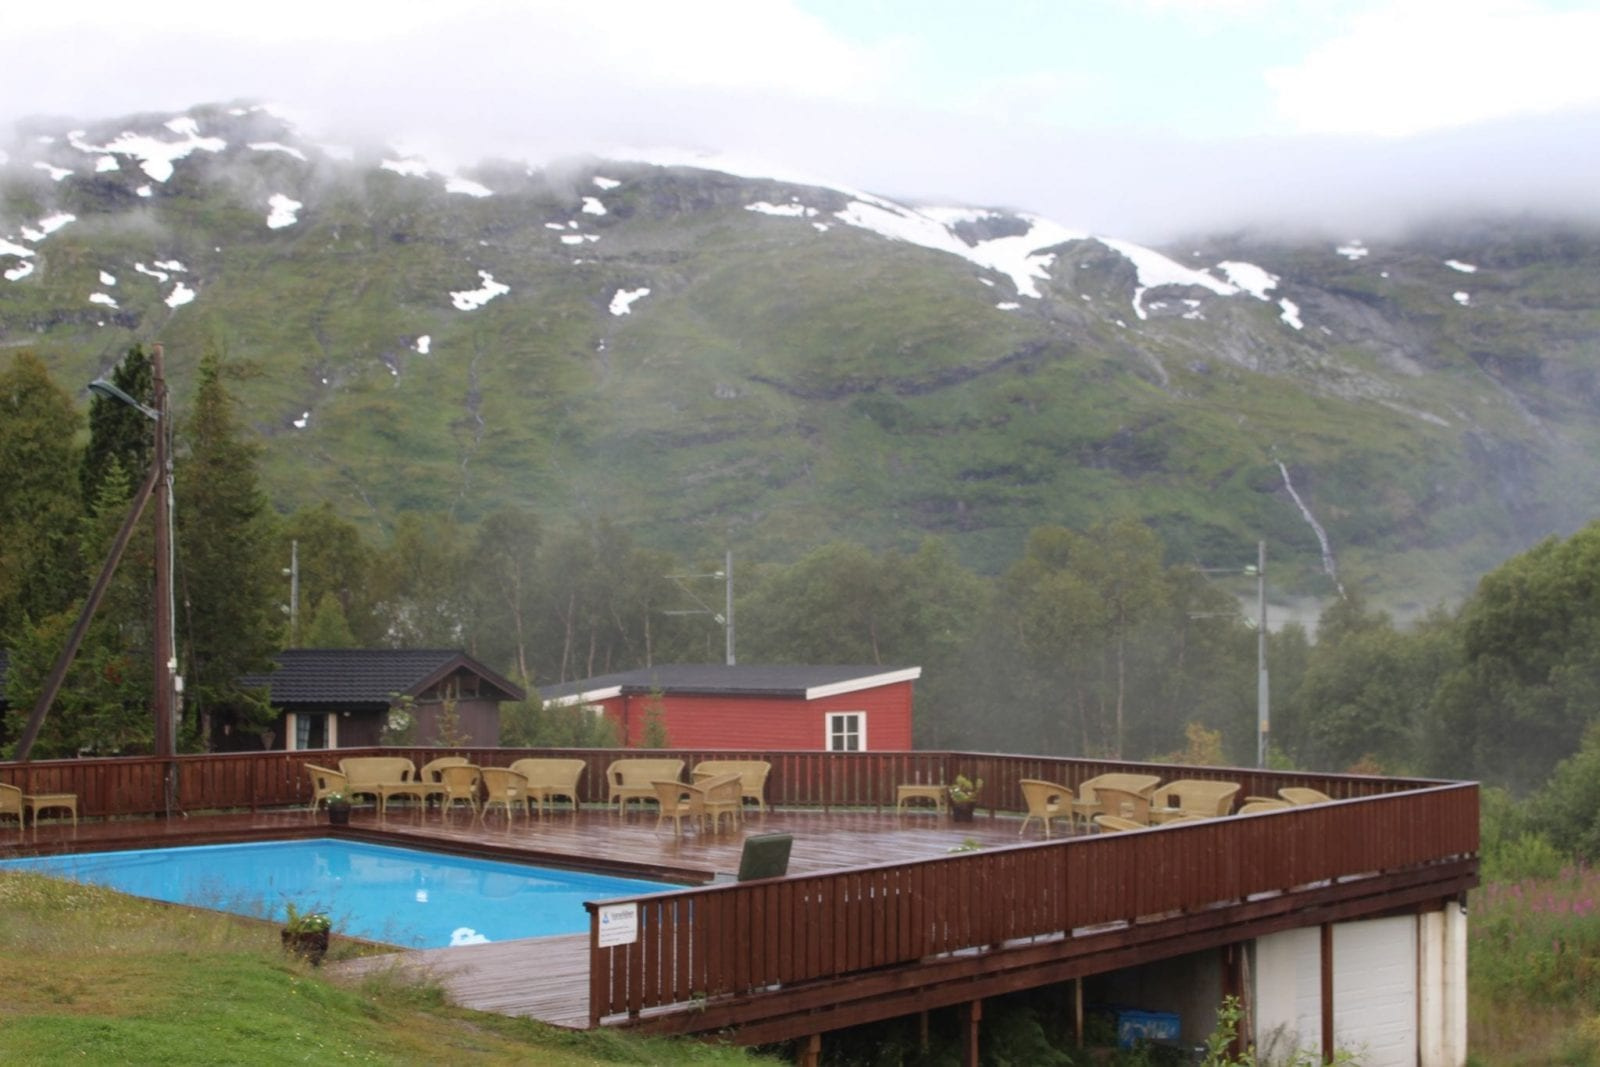 This is a great capture from the inside of the Vatnahalsen Høyfjellshotell outlooking the surroundings.